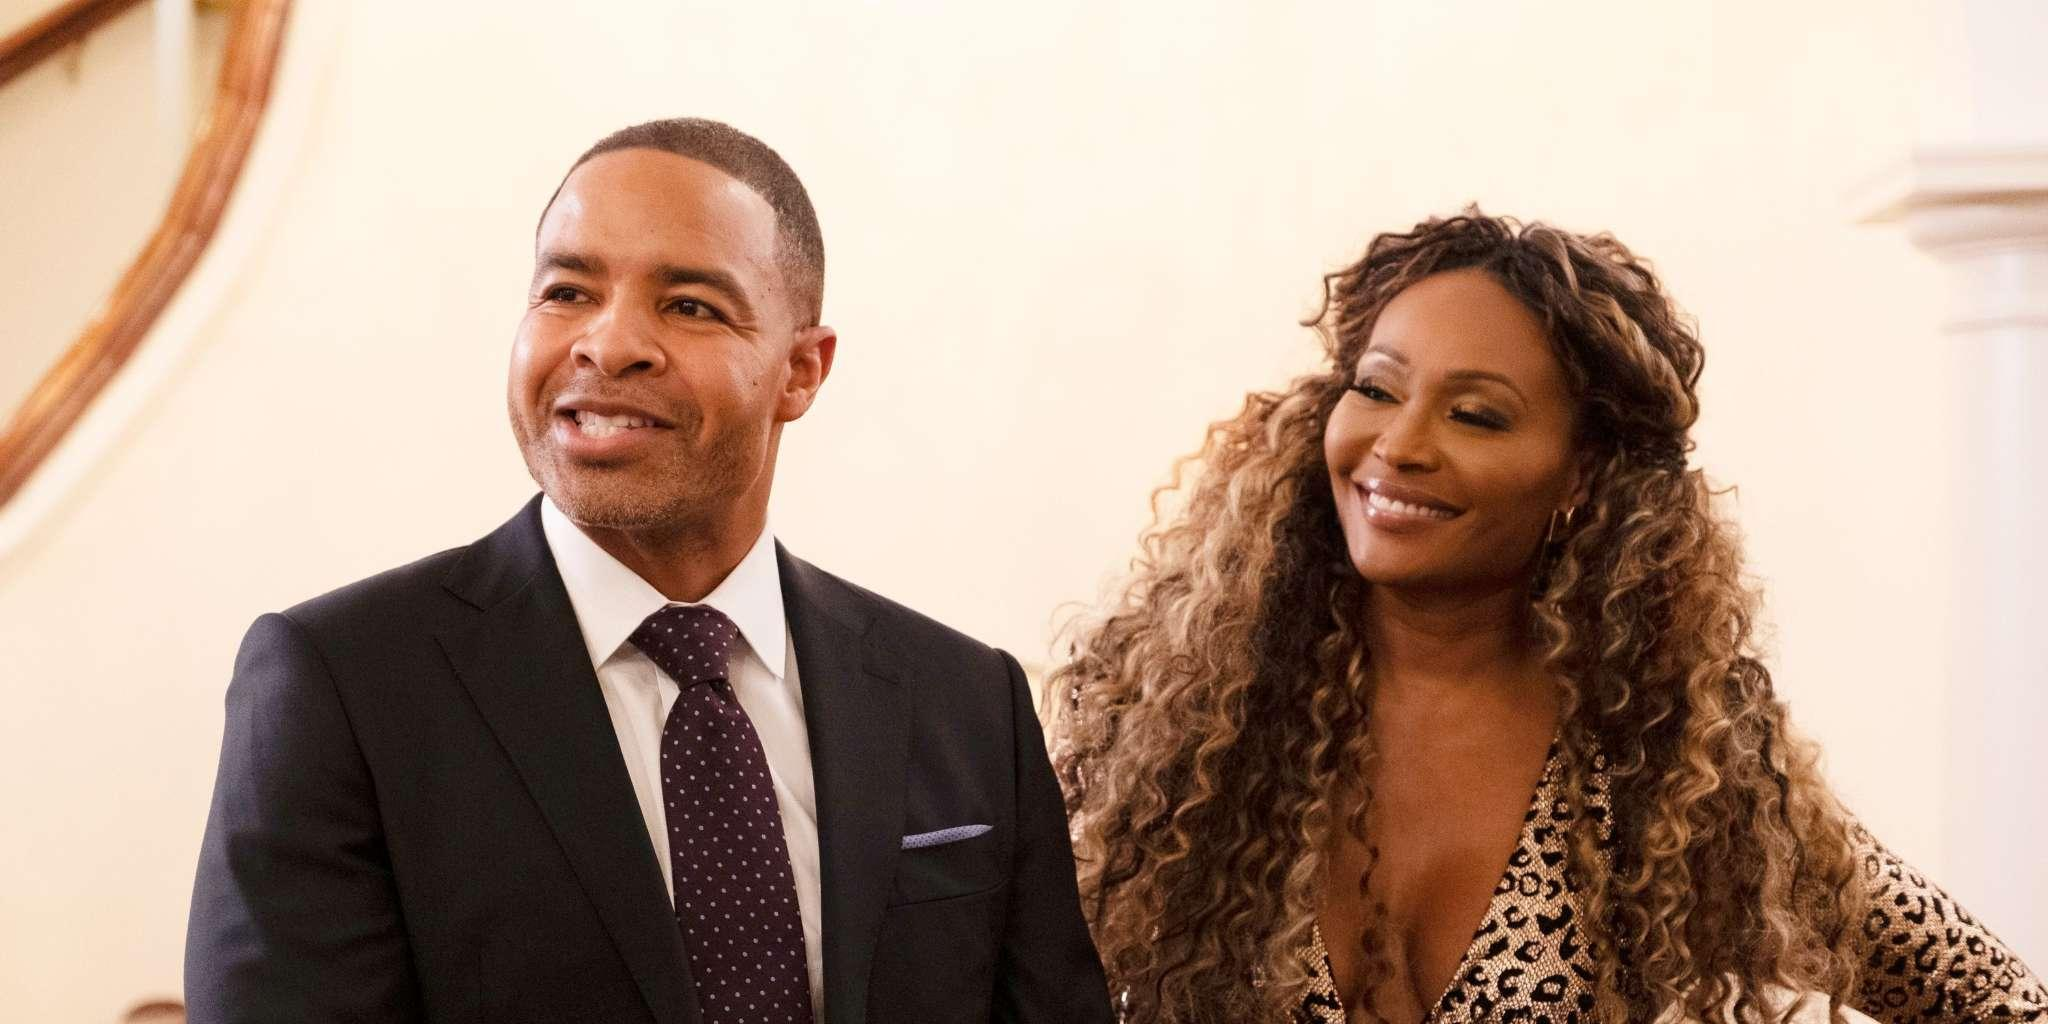 Cynthia Bailey Had A Date Night With Mike Hill - See Their Photos